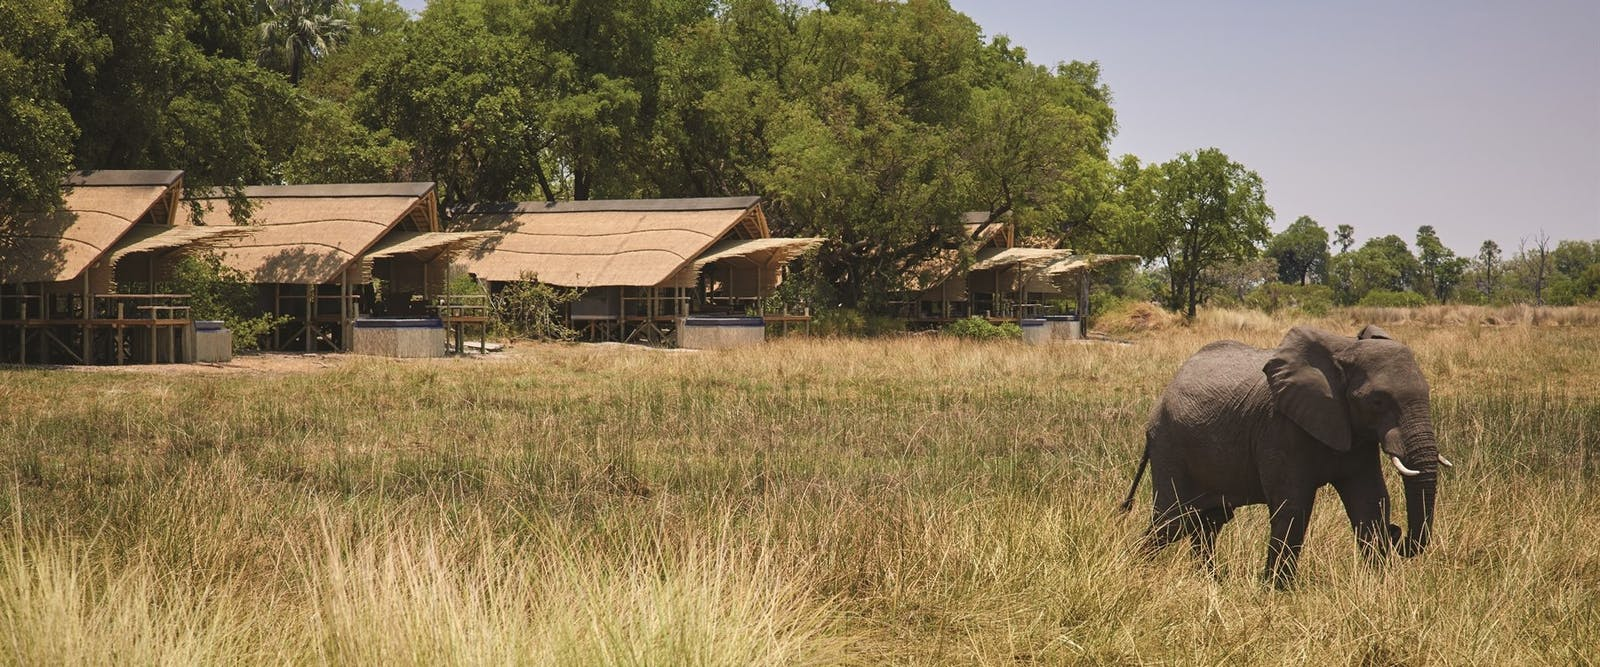 Exterior of Accommodation at Eagle Island Lodge, A Belmond Safari, Botswana